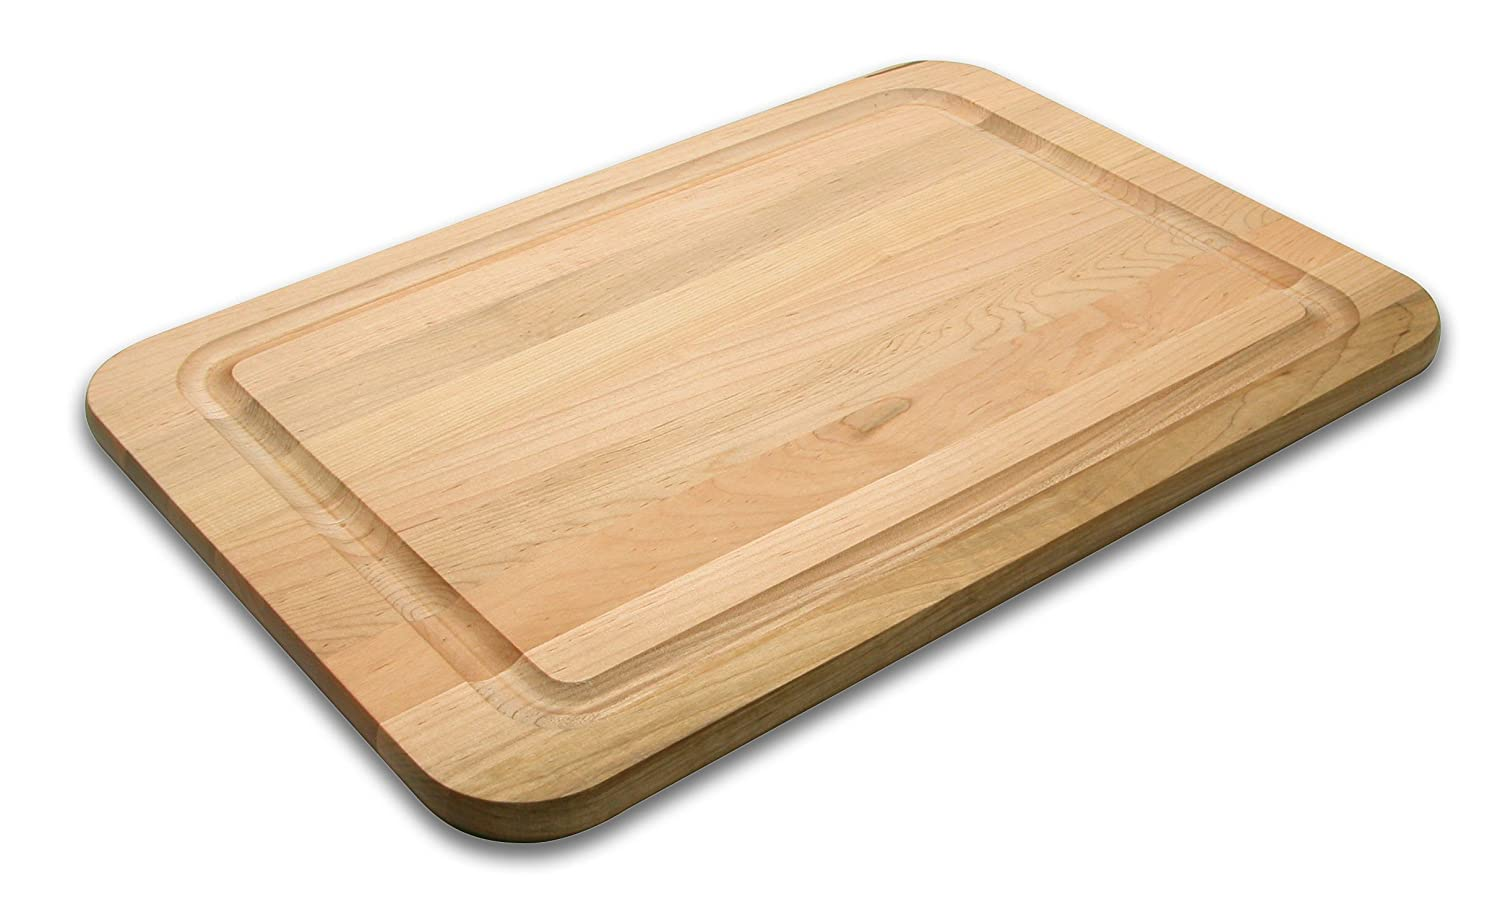 Snow River 18-Inch by 24-Inch Oversize Carving Board 7V03358